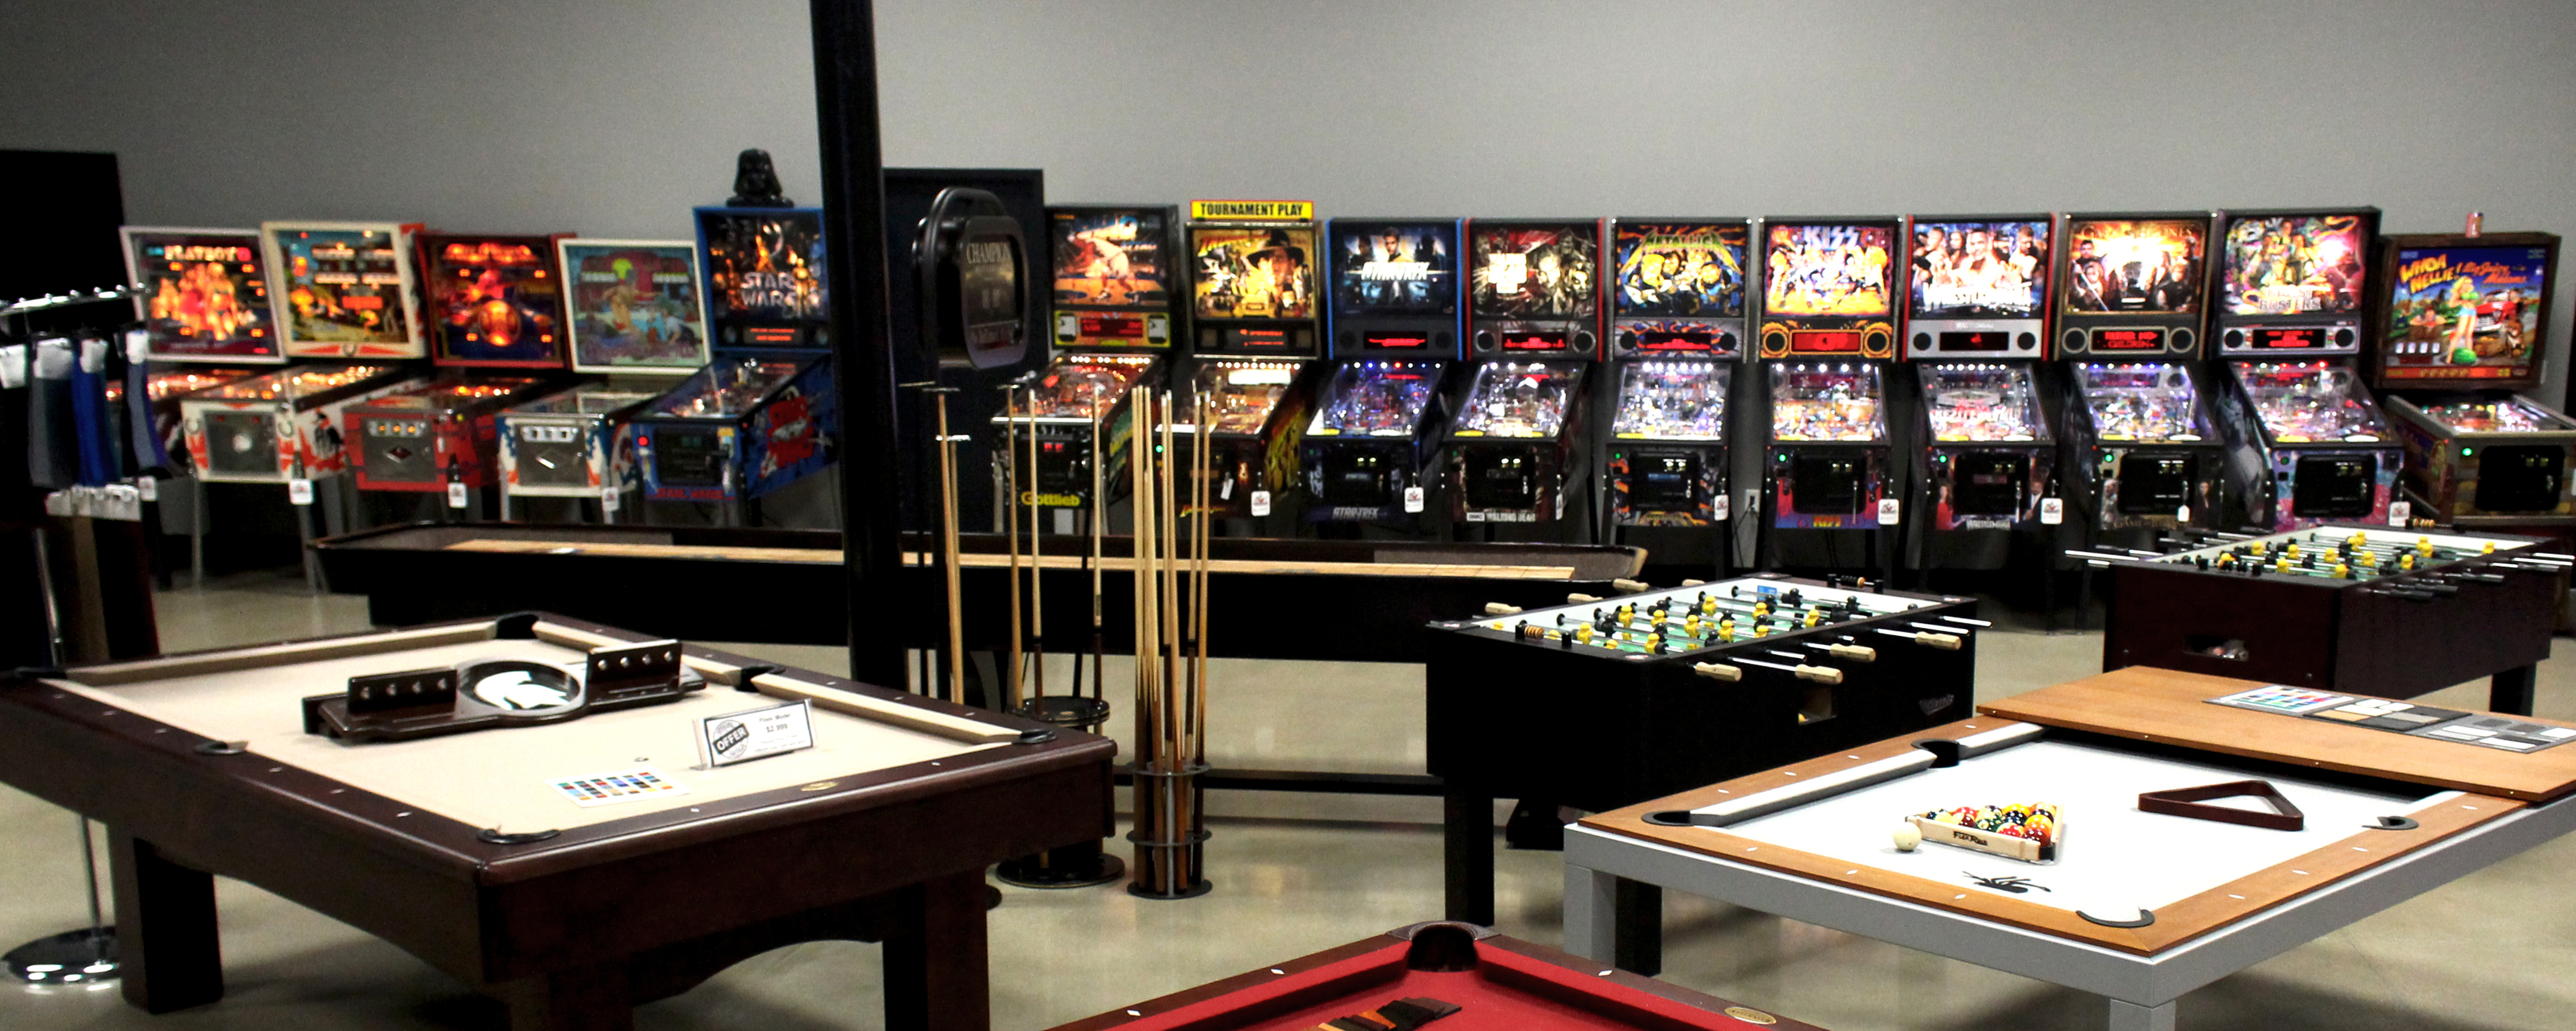 Pinballs in GRG Showroom